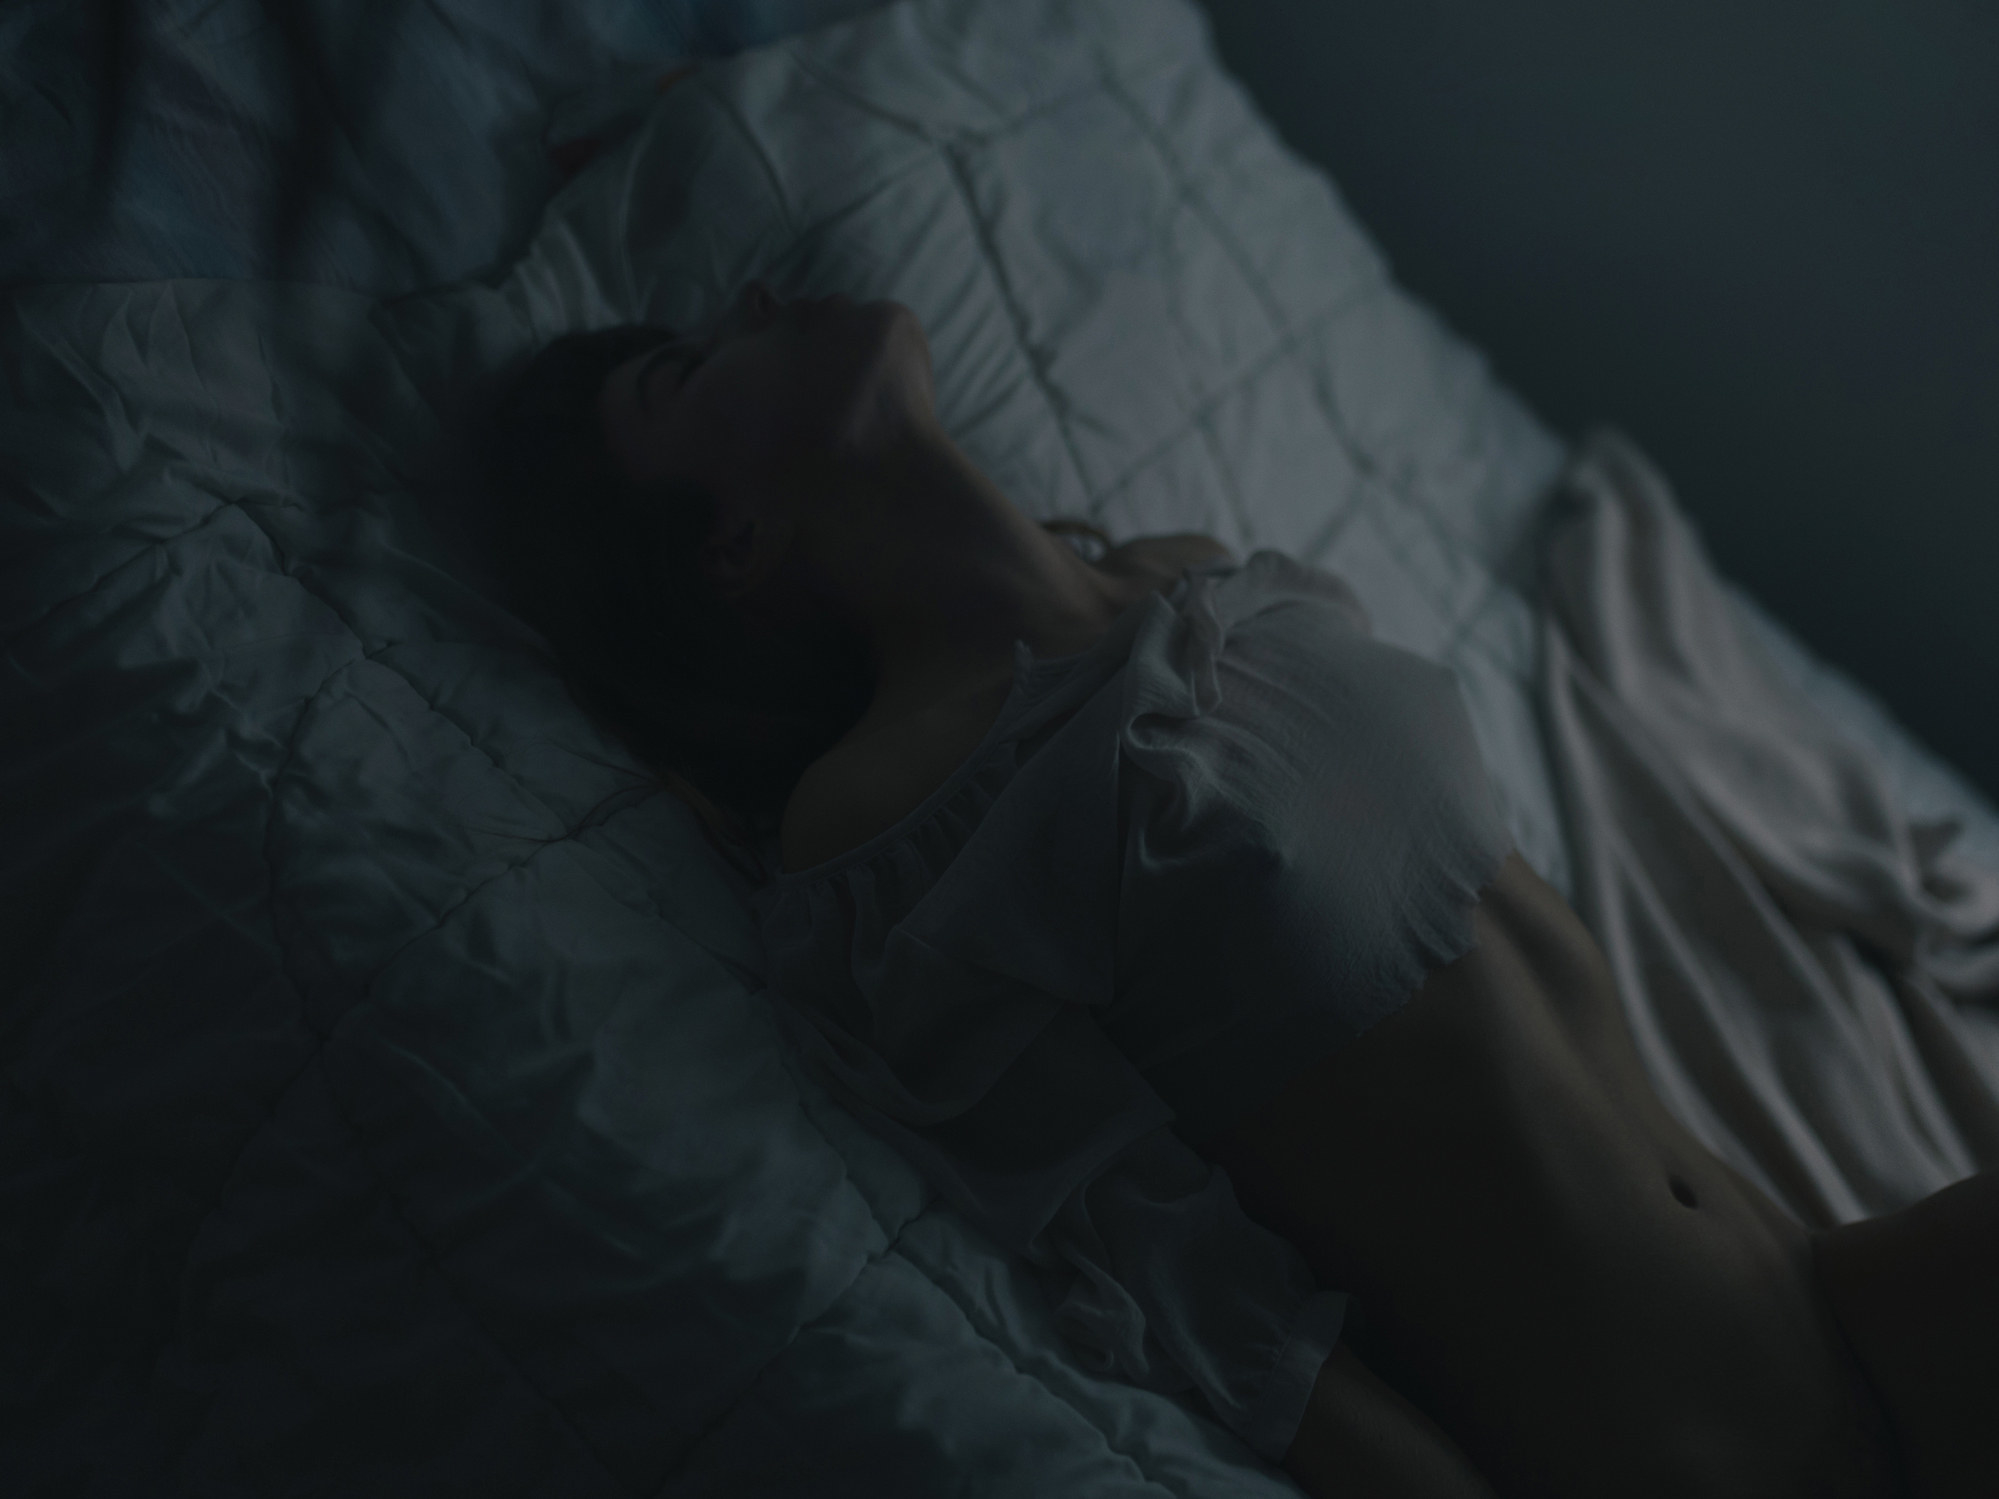 An image of a half-naked woman on a bed